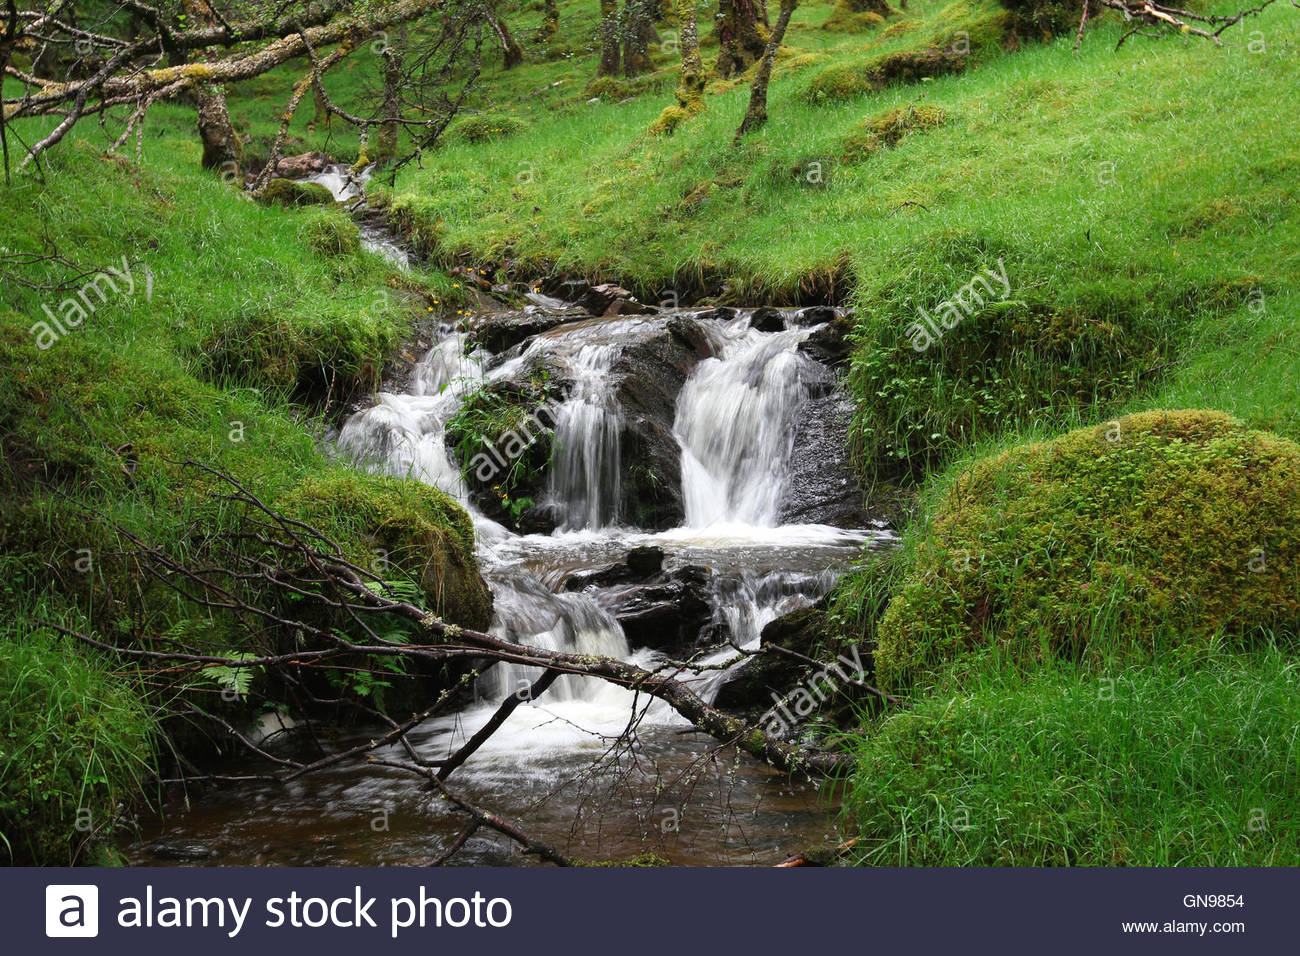 waterfall at glen lyon, perth and kinross, highlands, scotland, united kingdom Stock Photo